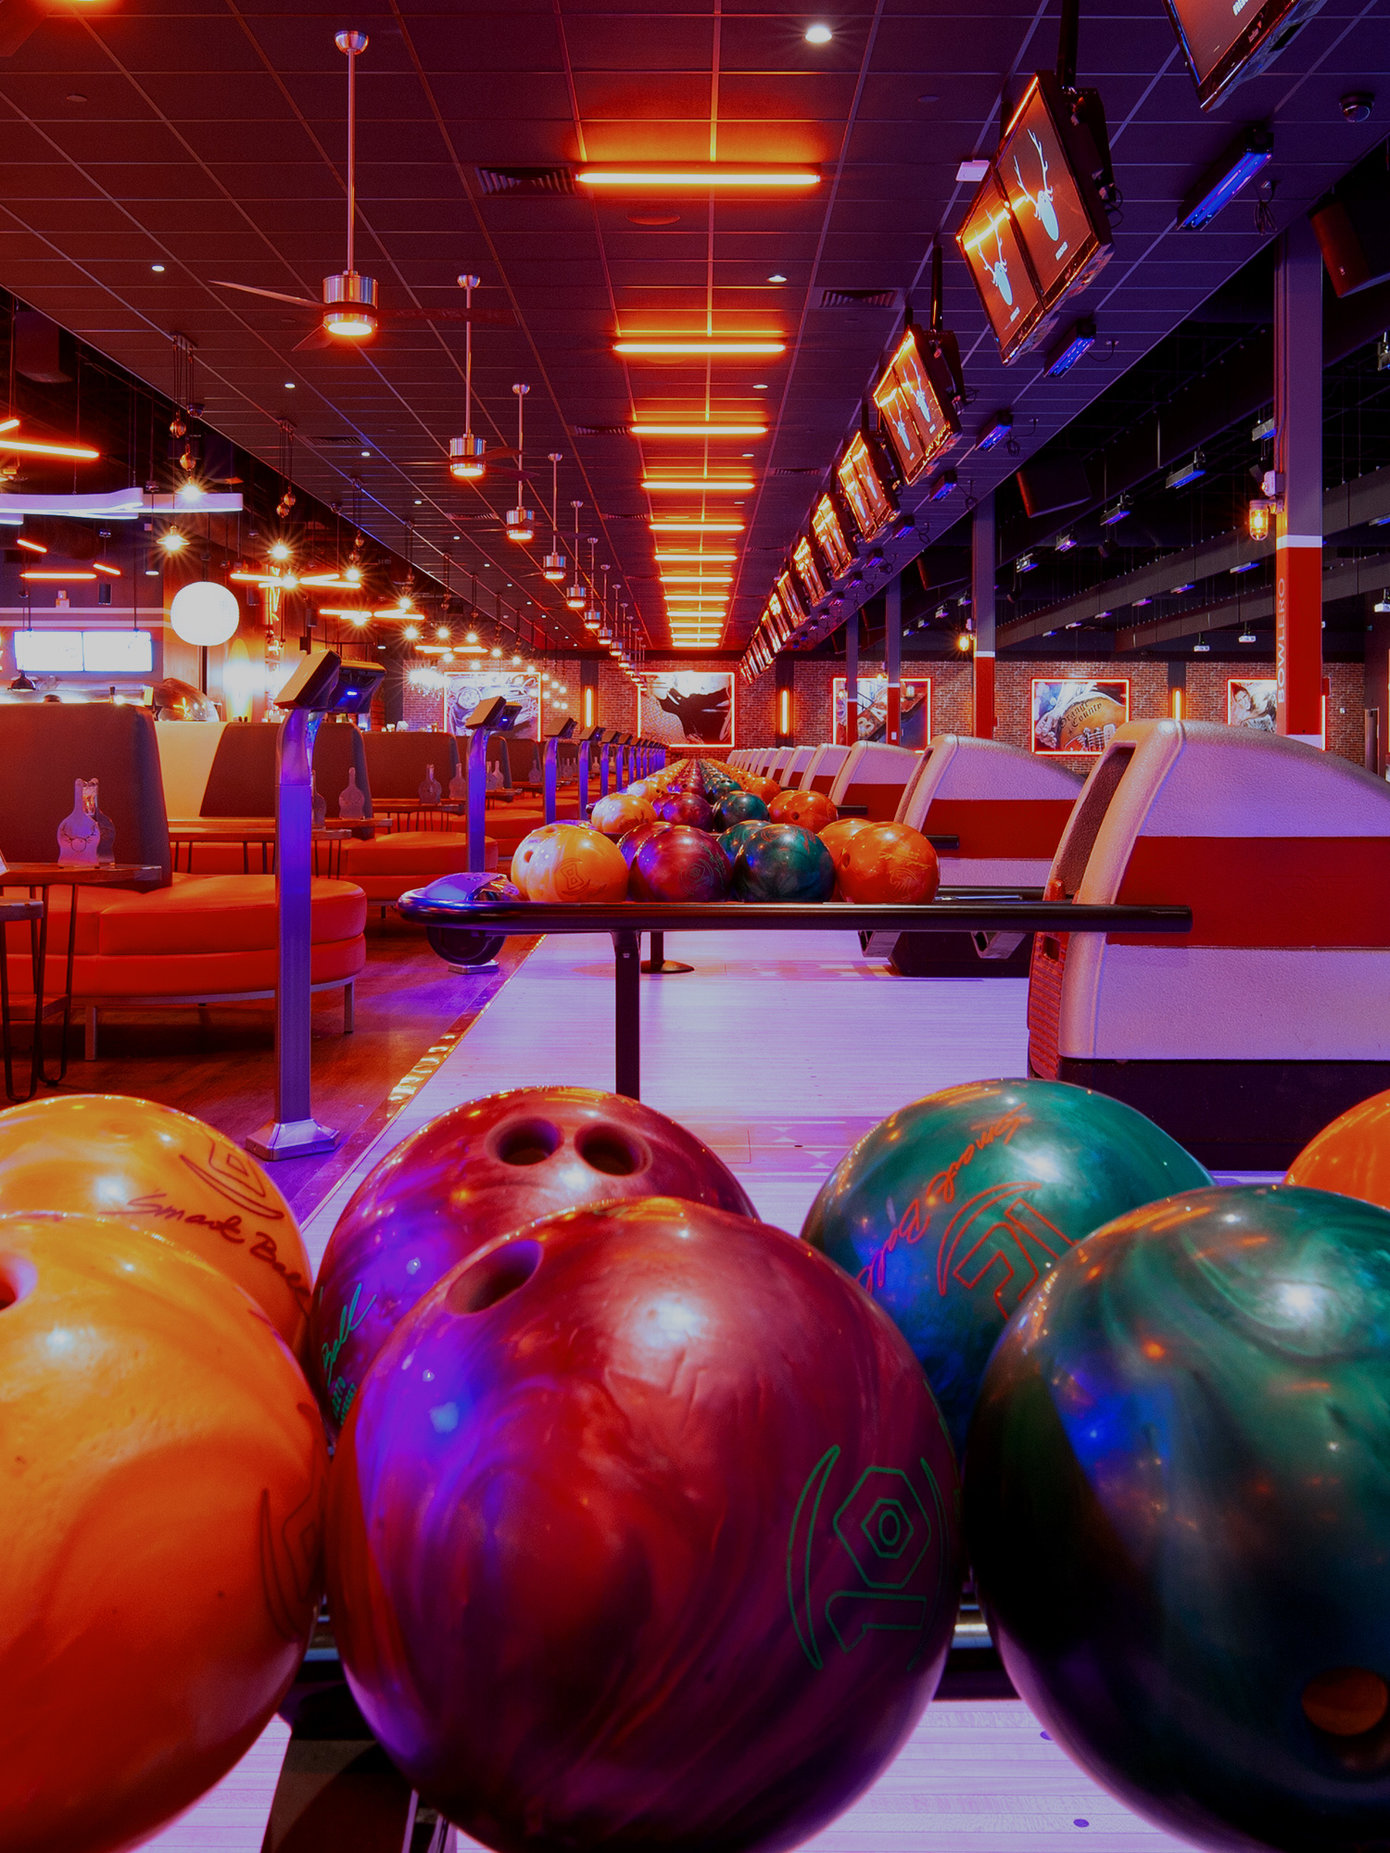 bowling balls with lanes in background